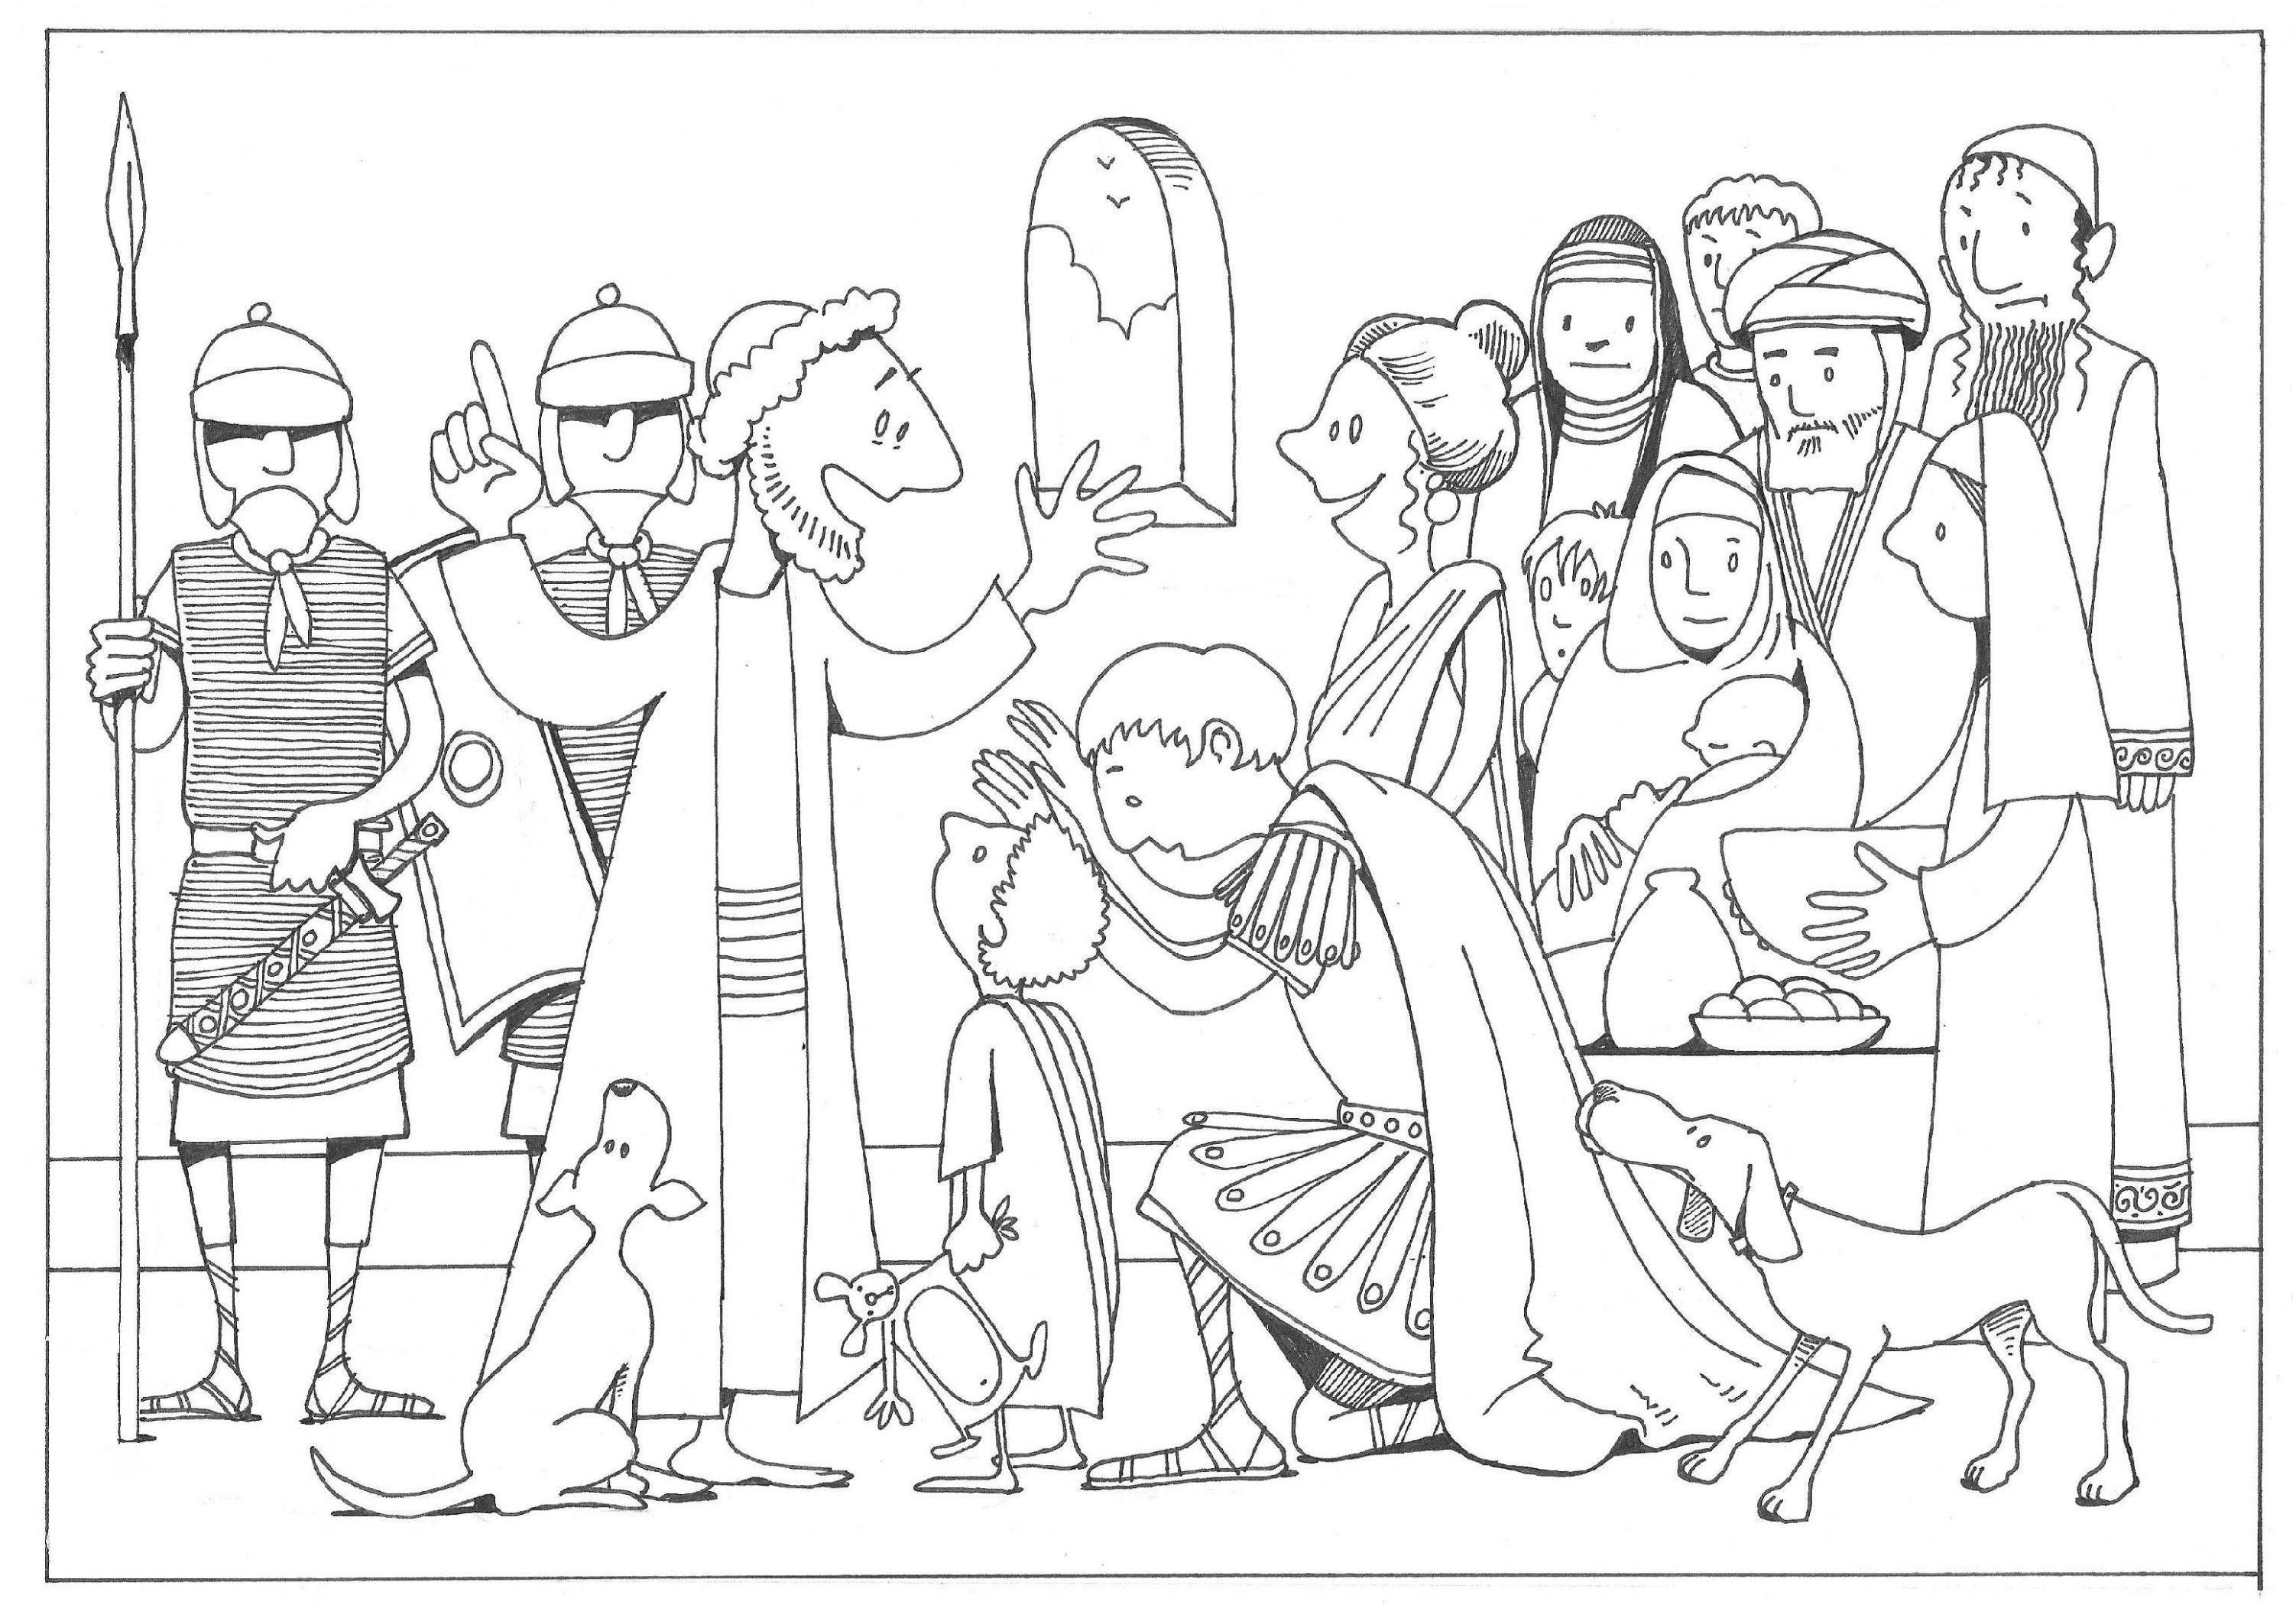 Peter And Cornelius Coloring Pages Coloring Pages Inspirational Coloring Pages Bible Coloring Pages [ 2104 x 3004 Pixel ]